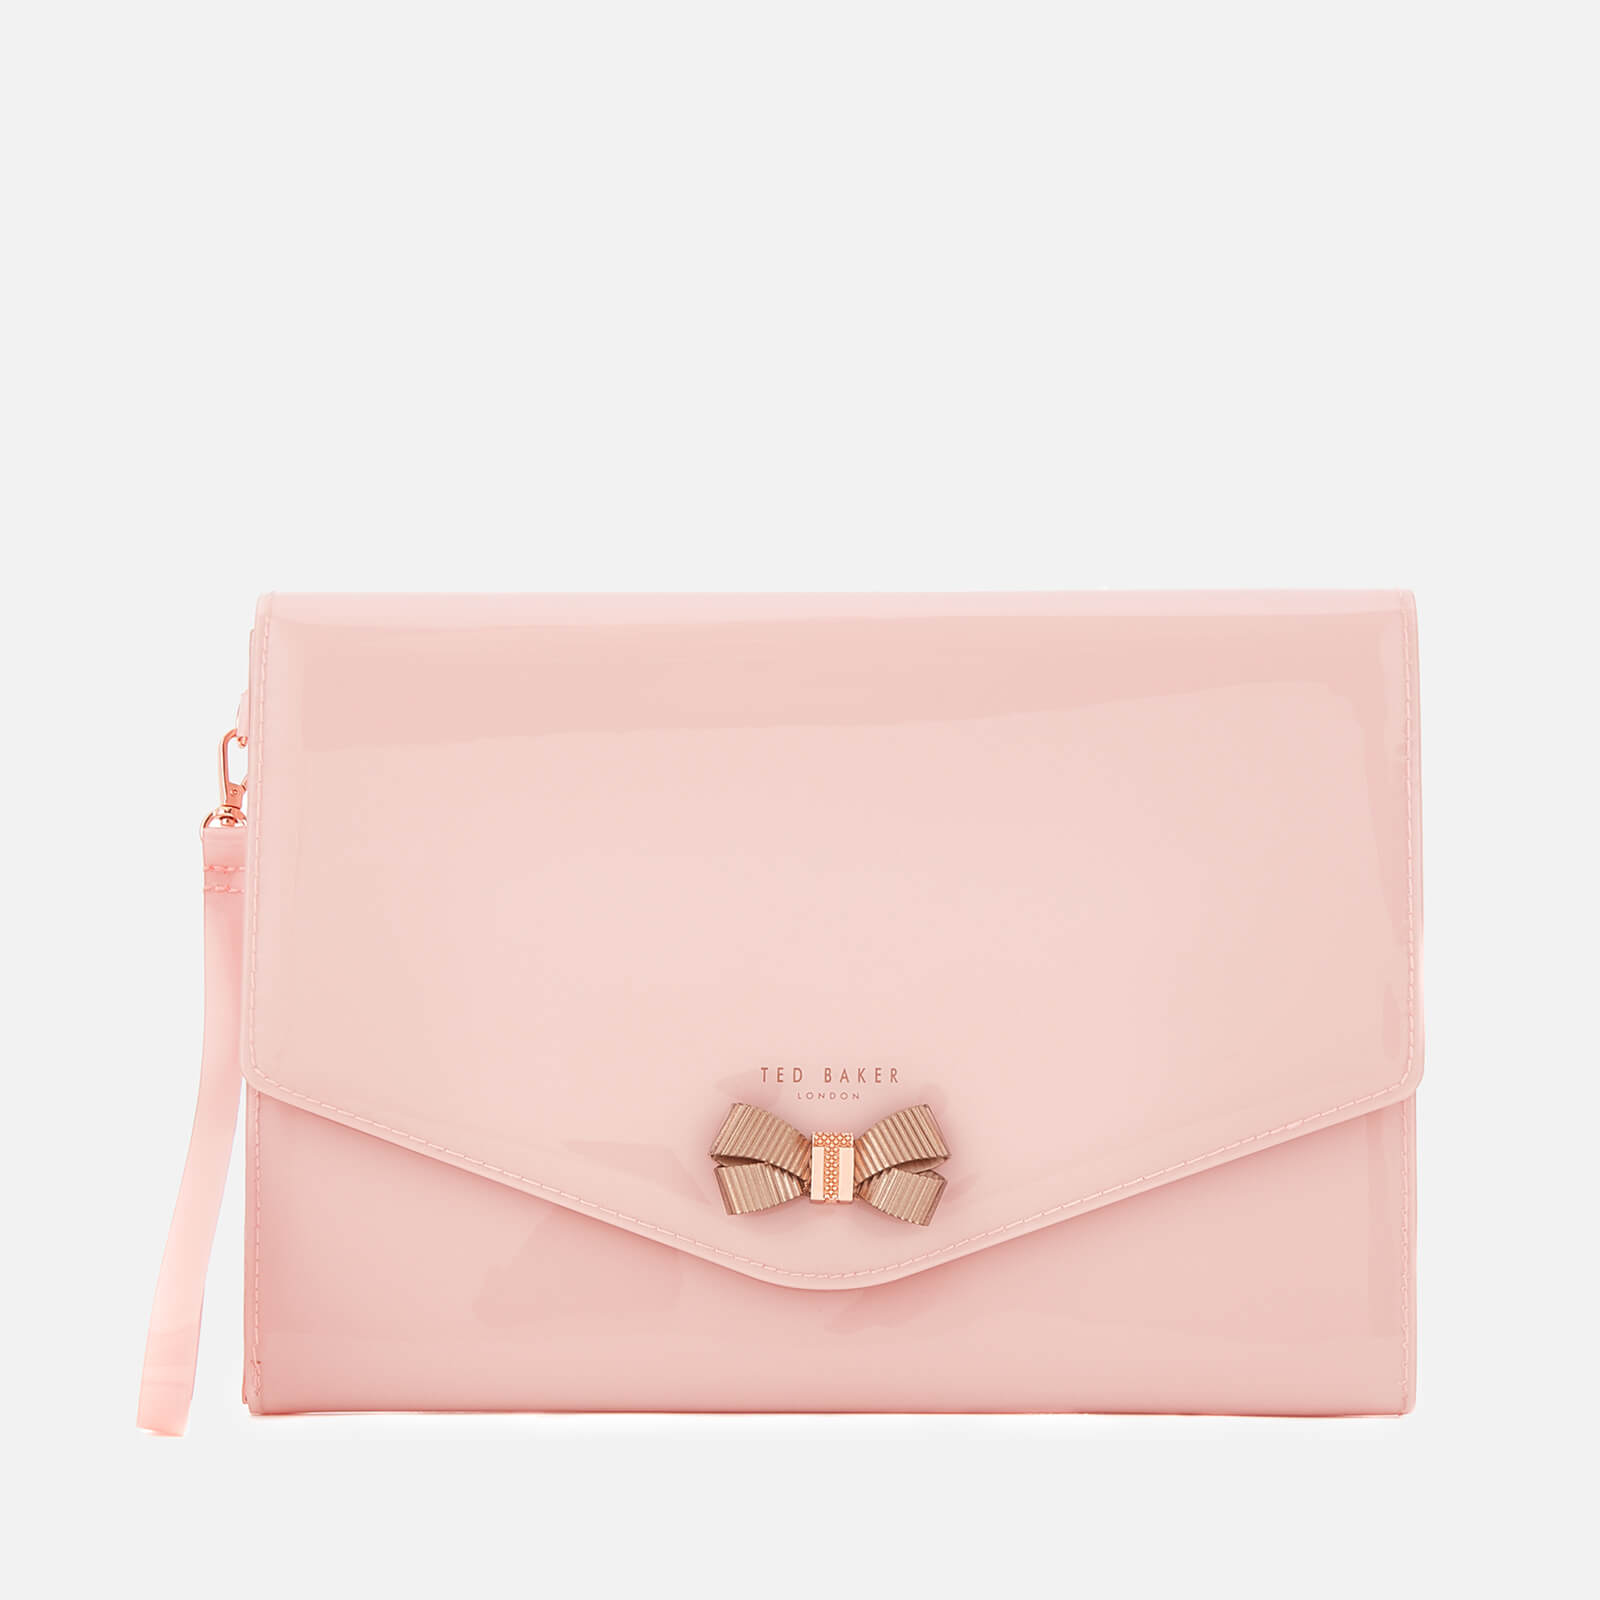 c244da5b2fa Ted Baker Women s Luanne Bow Envelope Pouch - Pale Pink Clothing ...